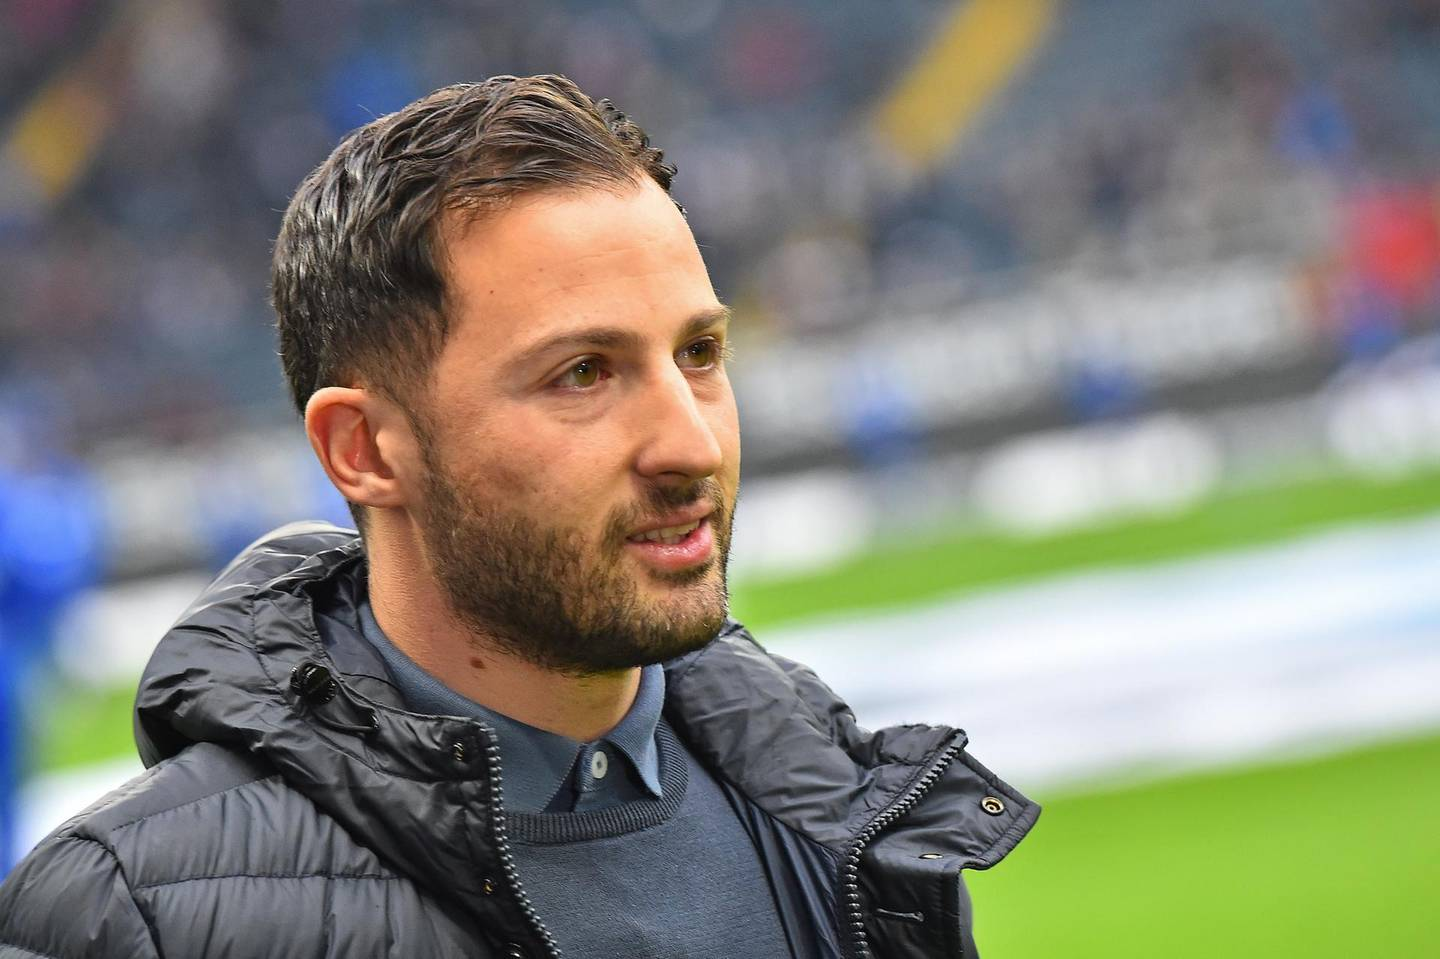 epa06393340 Schalke´s head coach Domenico Tedesco before the German Bundesliga soccer match between Eintracht Frankfurt and FC Schalke 04 in Frankfurt, Germany, 16 December 2017.  EPA/HASAN BRATIC (EMBARGO CONDITIONS - ATTENTION: Due to the accreditation guidelines, the DFL only permits the publication and utilisation of up to 15 pictures per match on the internet and in online media during the match.)